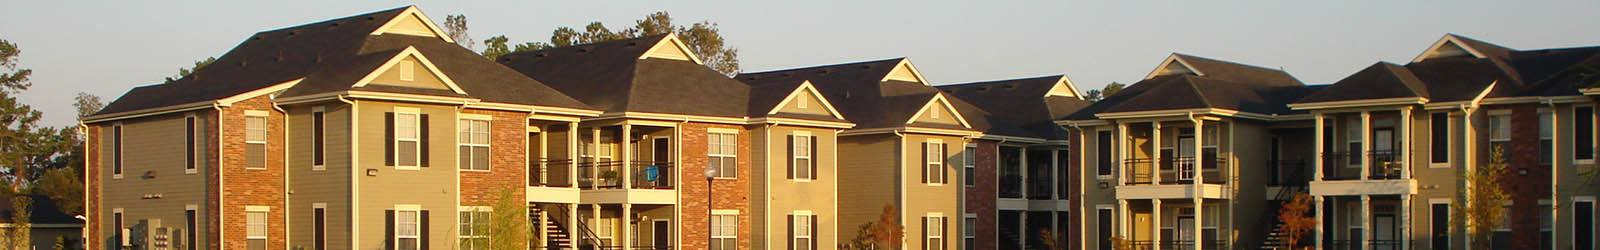 Schedule a tour to view our apartments in Lake Charles, LA